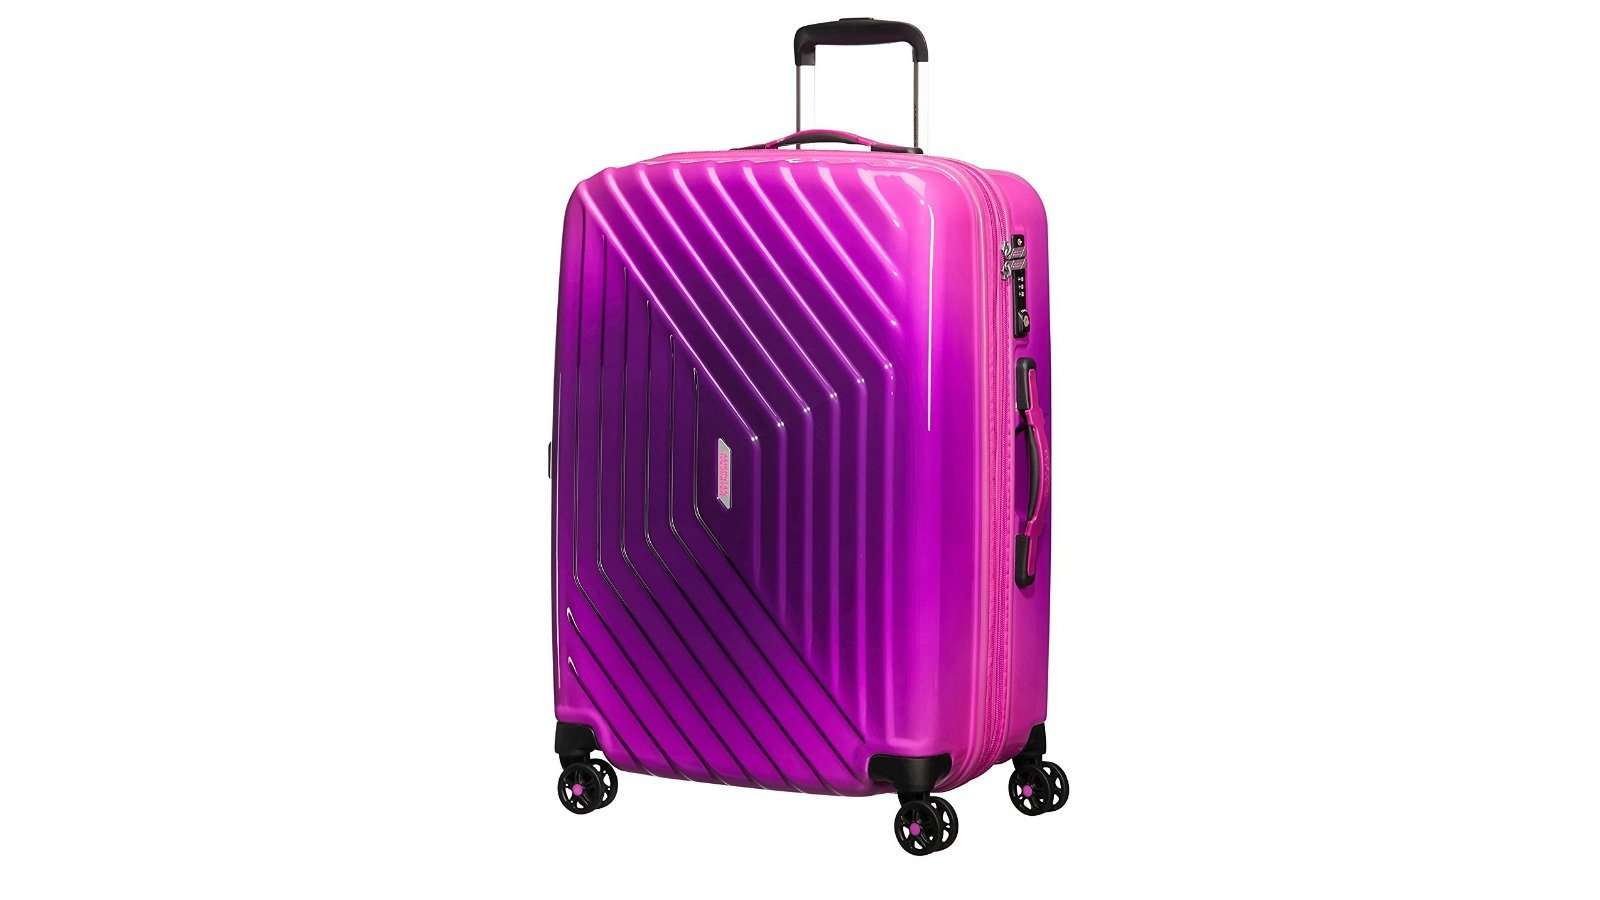 c573573cf753 Best suitcase 2019  Pick up a baggage bargain on these stylish and ...